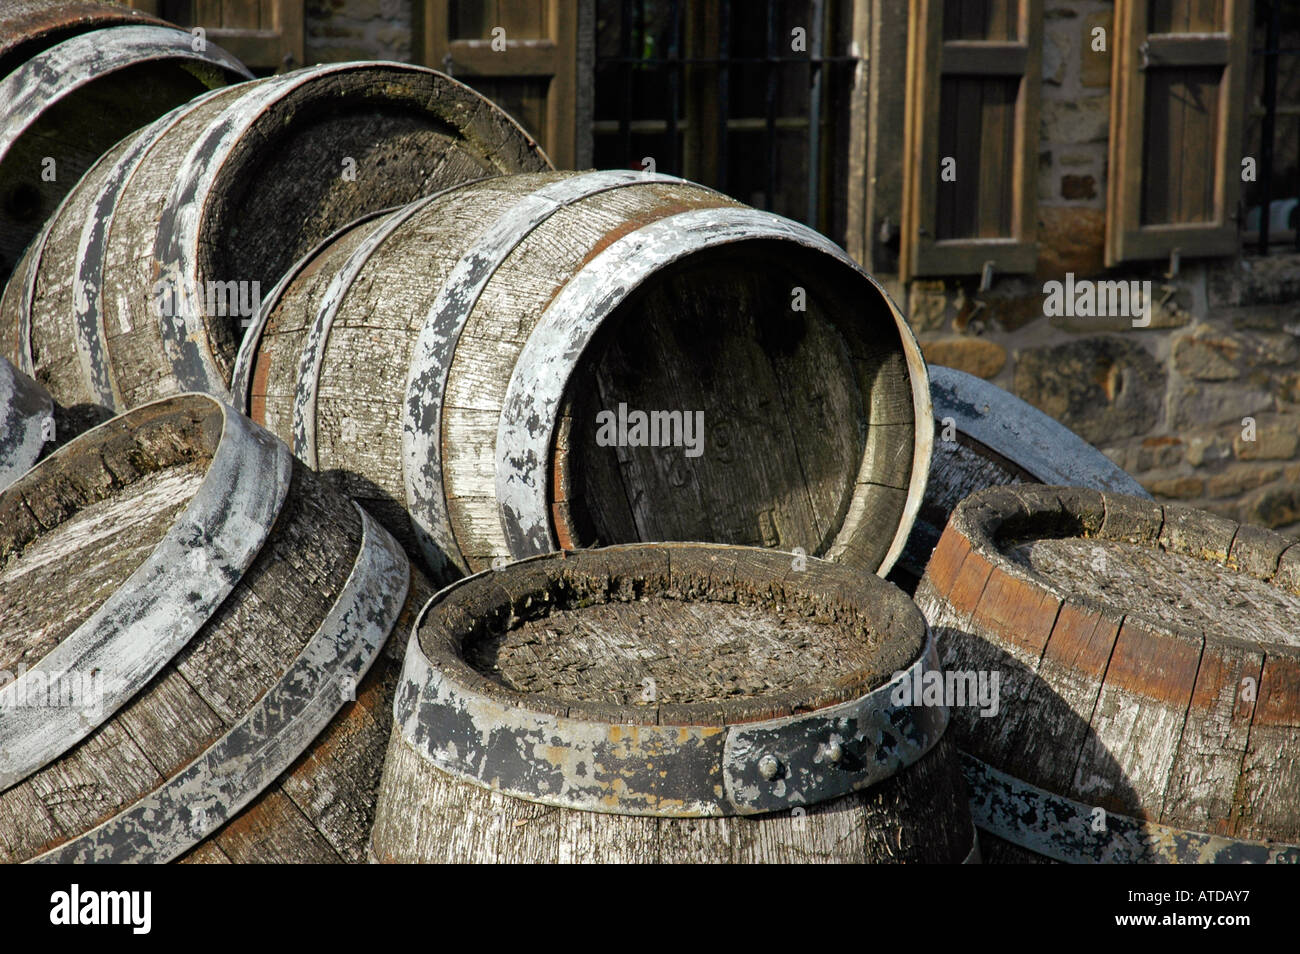 Old beer kegs on a cart in front of the brewery, Westphalian Open-Air Museum Hagen, Road of Industry Culture - Stock Image